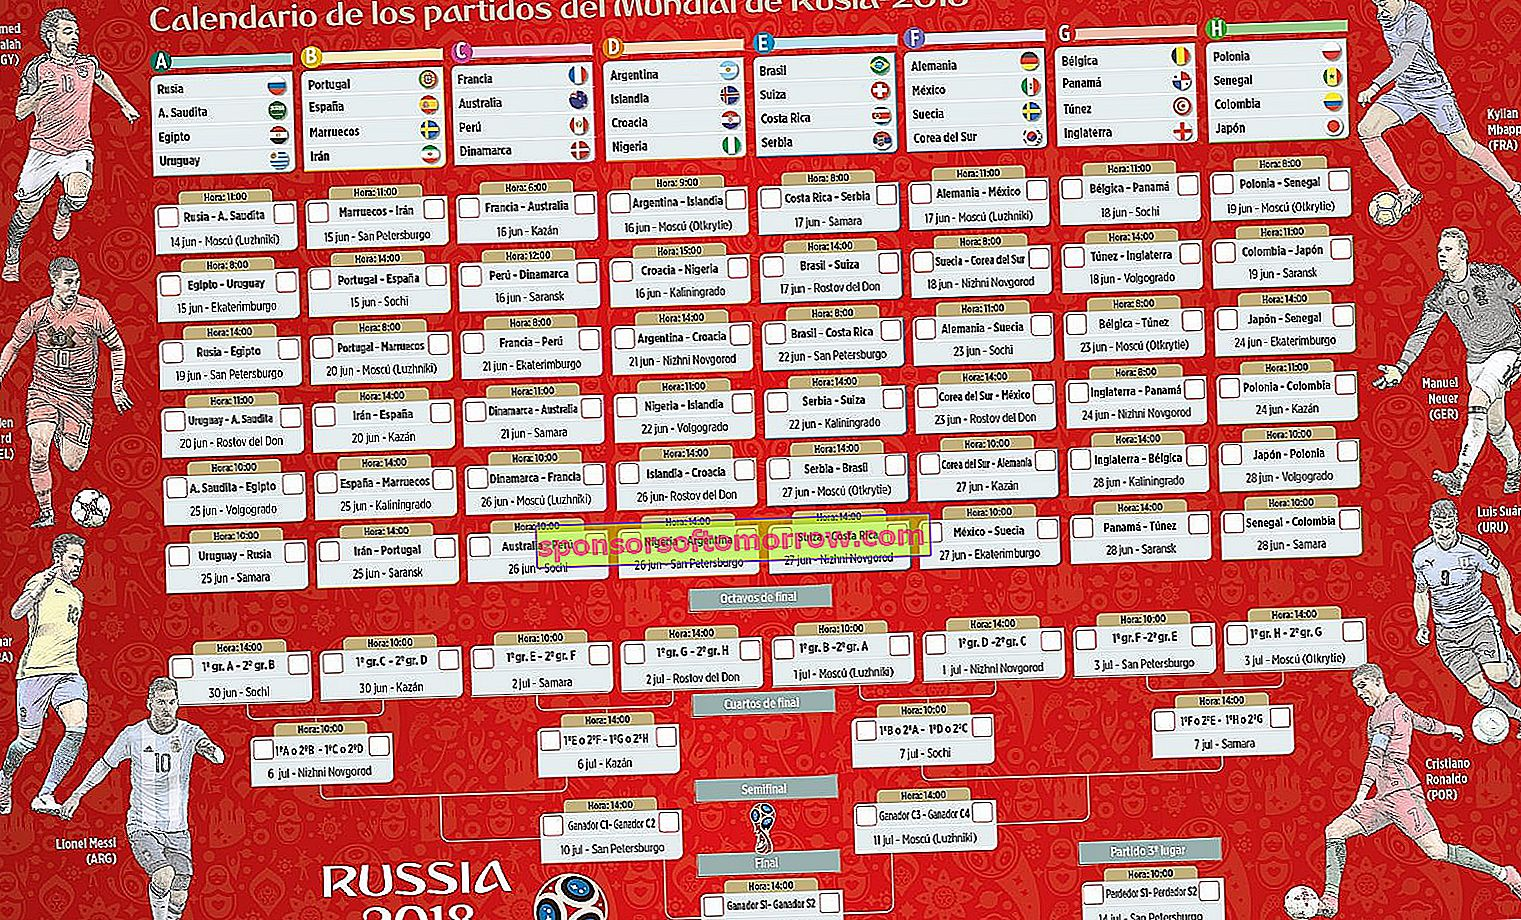 20 Soccer World Cup 2018 calendars to download and print 1